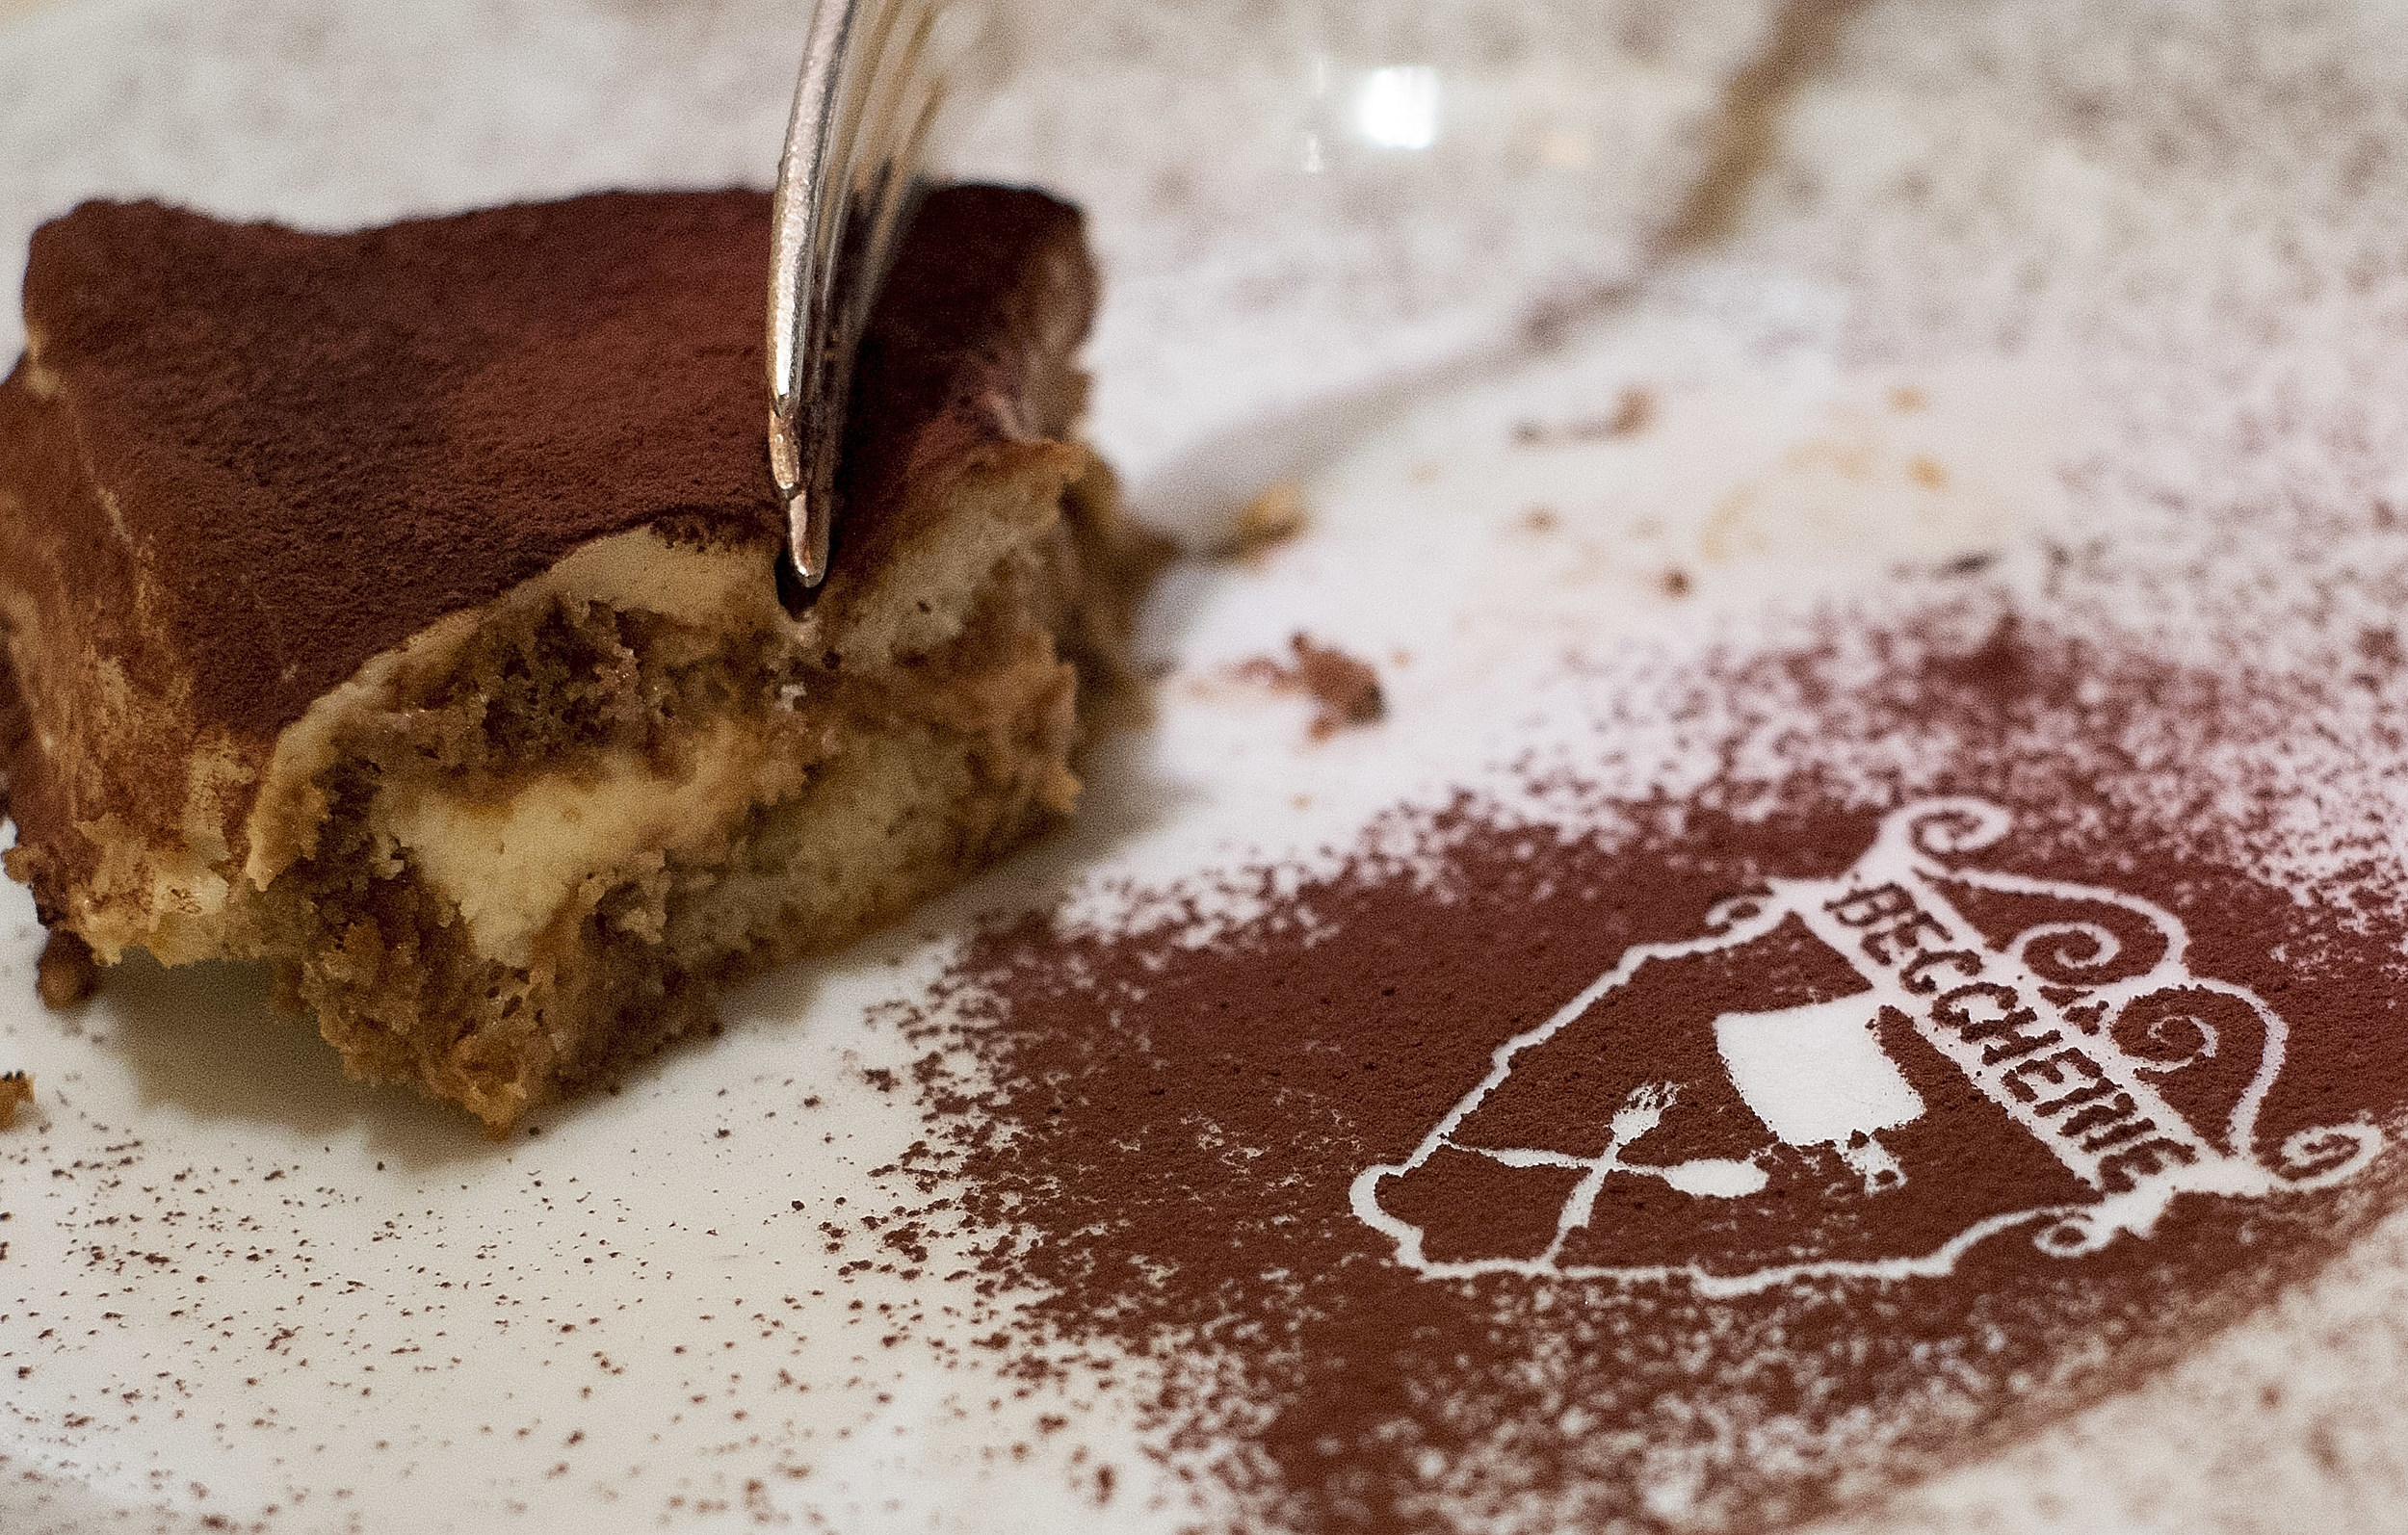 Italian Town of Treviso Lays Claims As The Birthplace Of Tiramisu